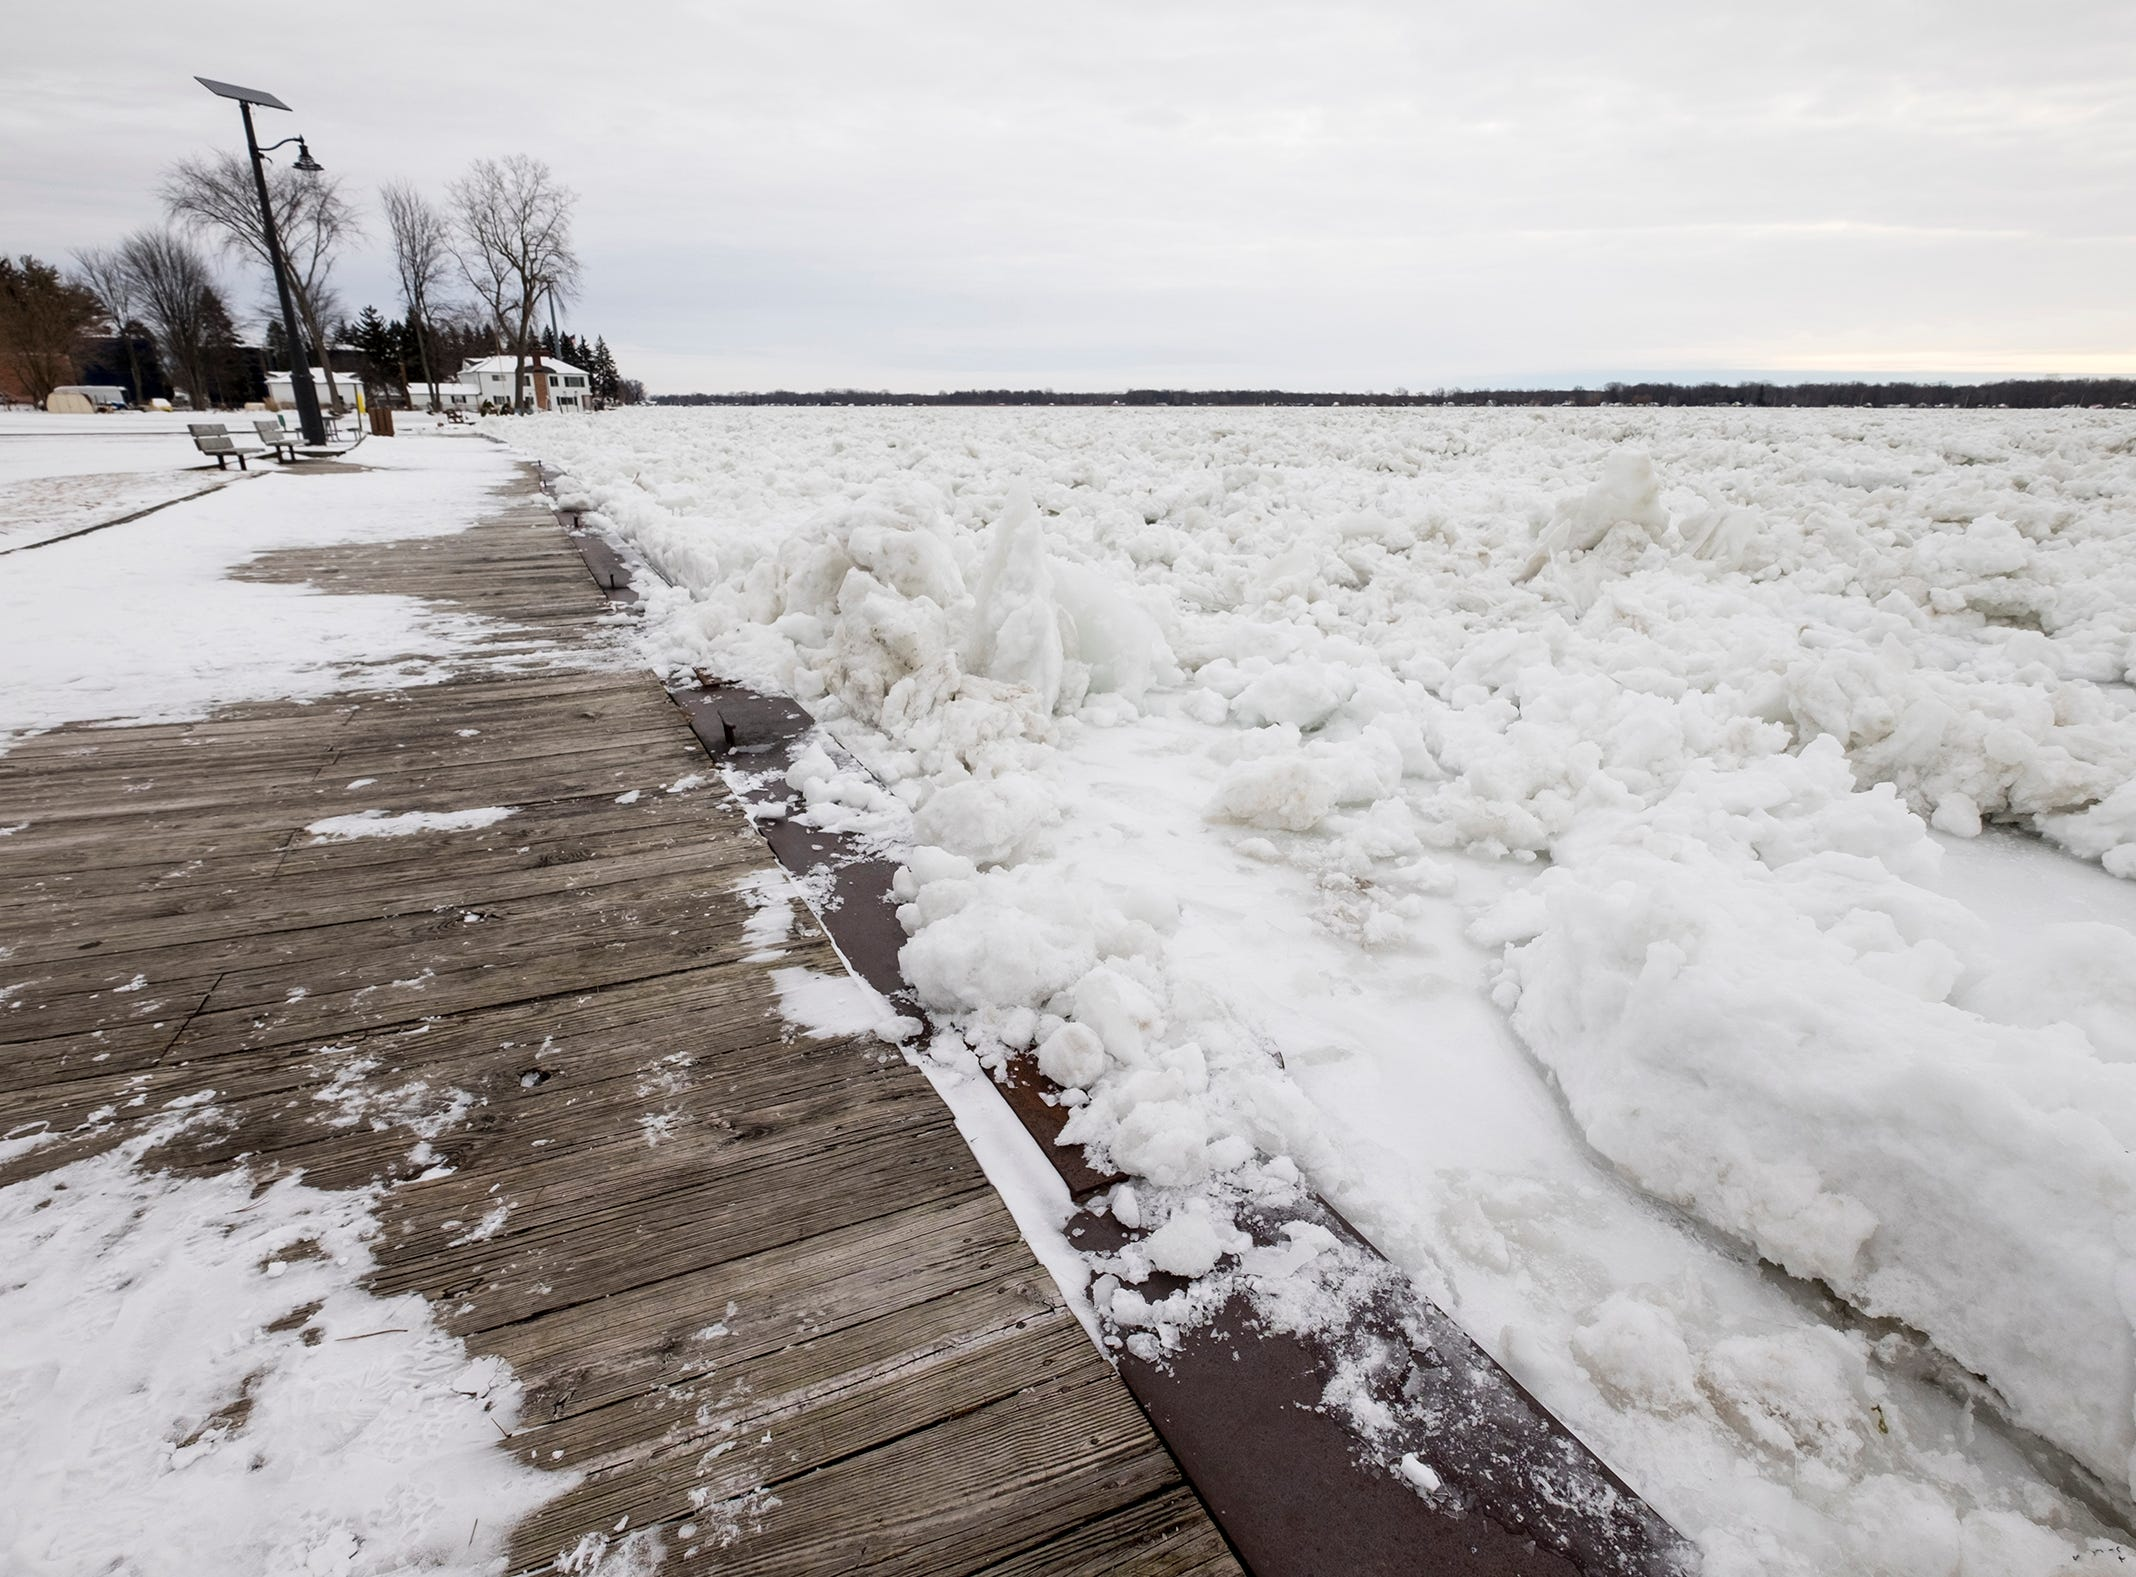 Ice from the St. Clair River spills over onto the boardwalk in Algonac Tuesday, Jan. 22, 2019. An ice jam formed in the St. Clair River near Algonac over the weekend, resulting in climbing water levels and flooding along the river and in canals.